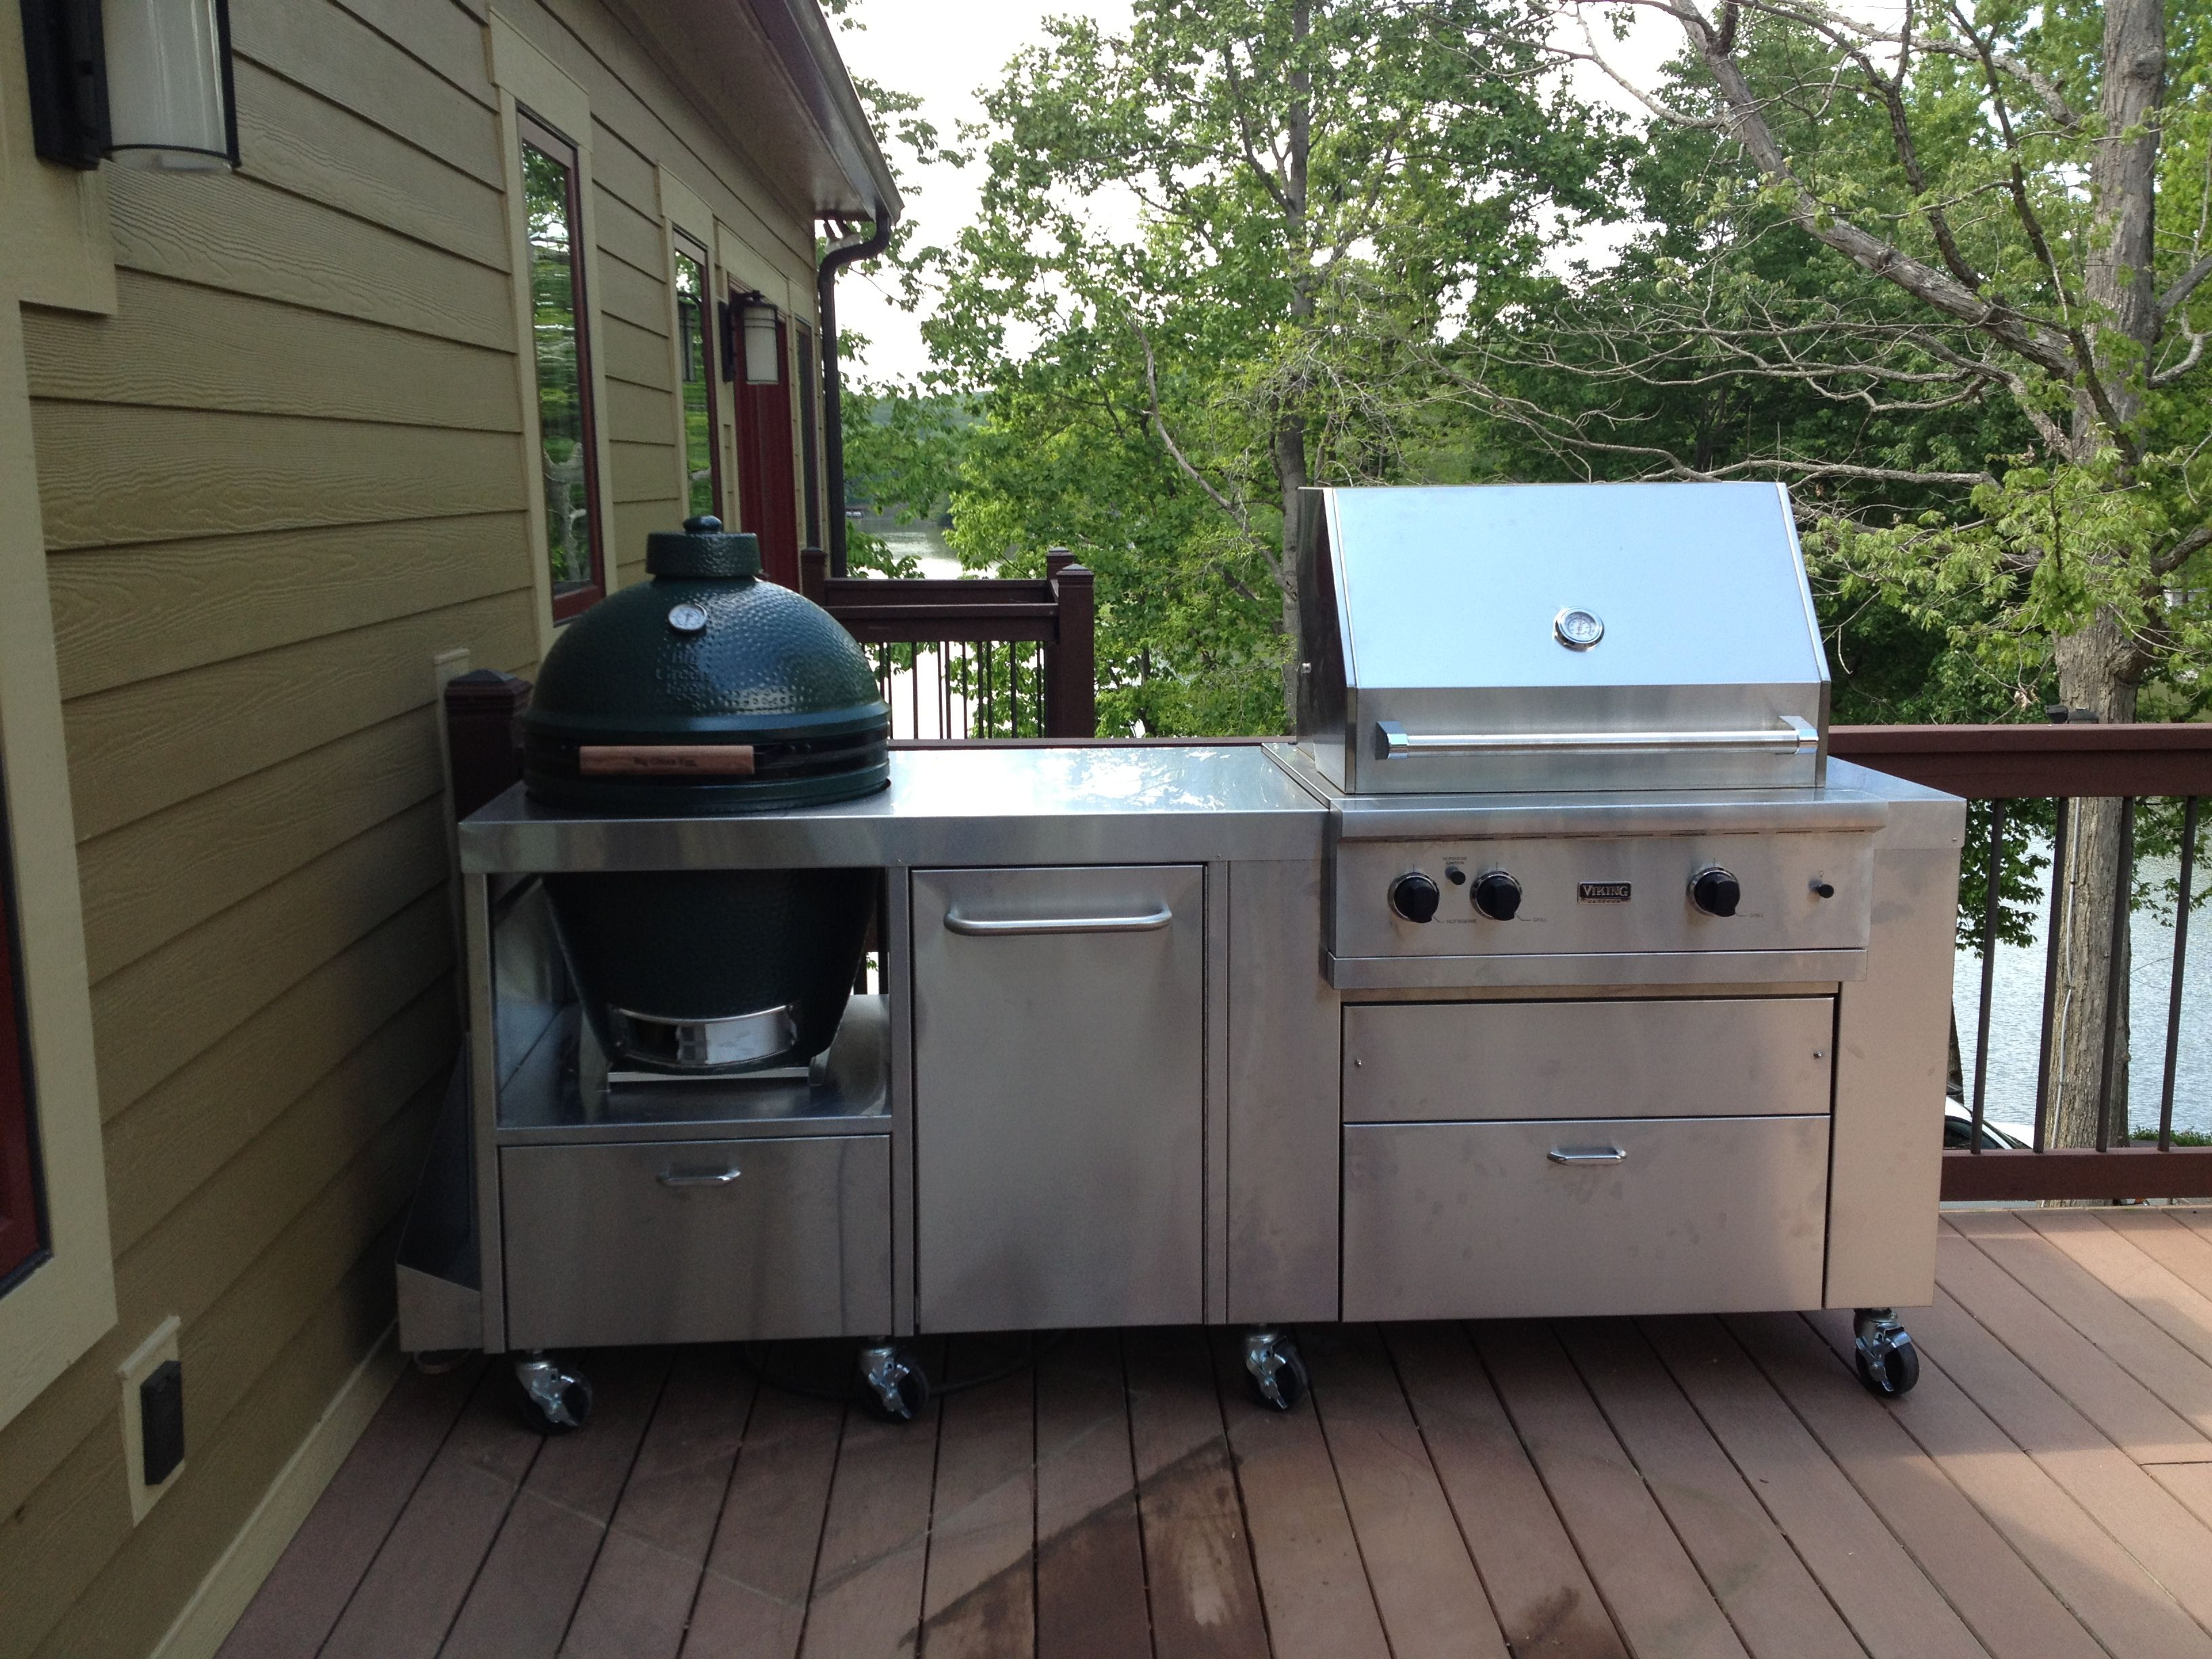 With Viking Grill Grill Stone Gas Grill Grill Table